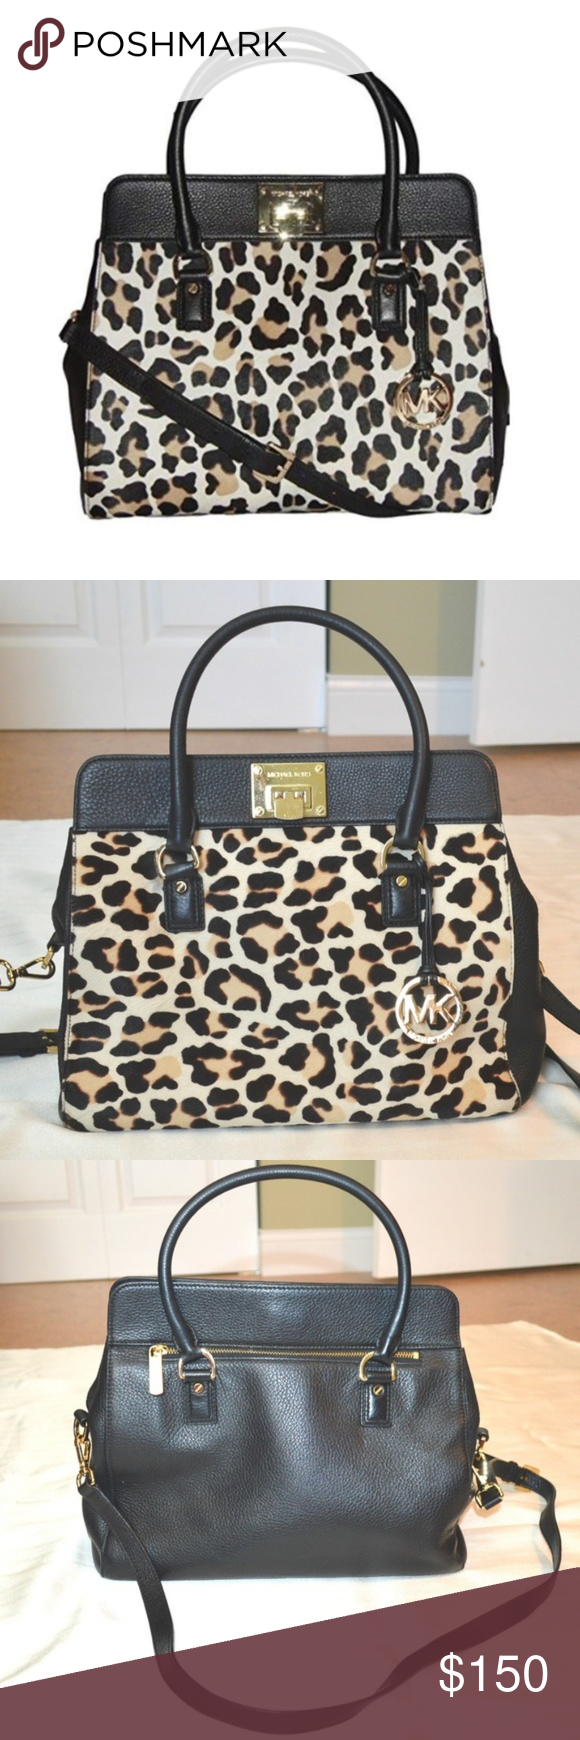 0342f2717c5c Michael Kors Astrid Leopard Print Calf Hair Tote Brand  Michael Kors Style  Astrid  Black Leather   Leopard Print Calf Hair Tote Color  Black